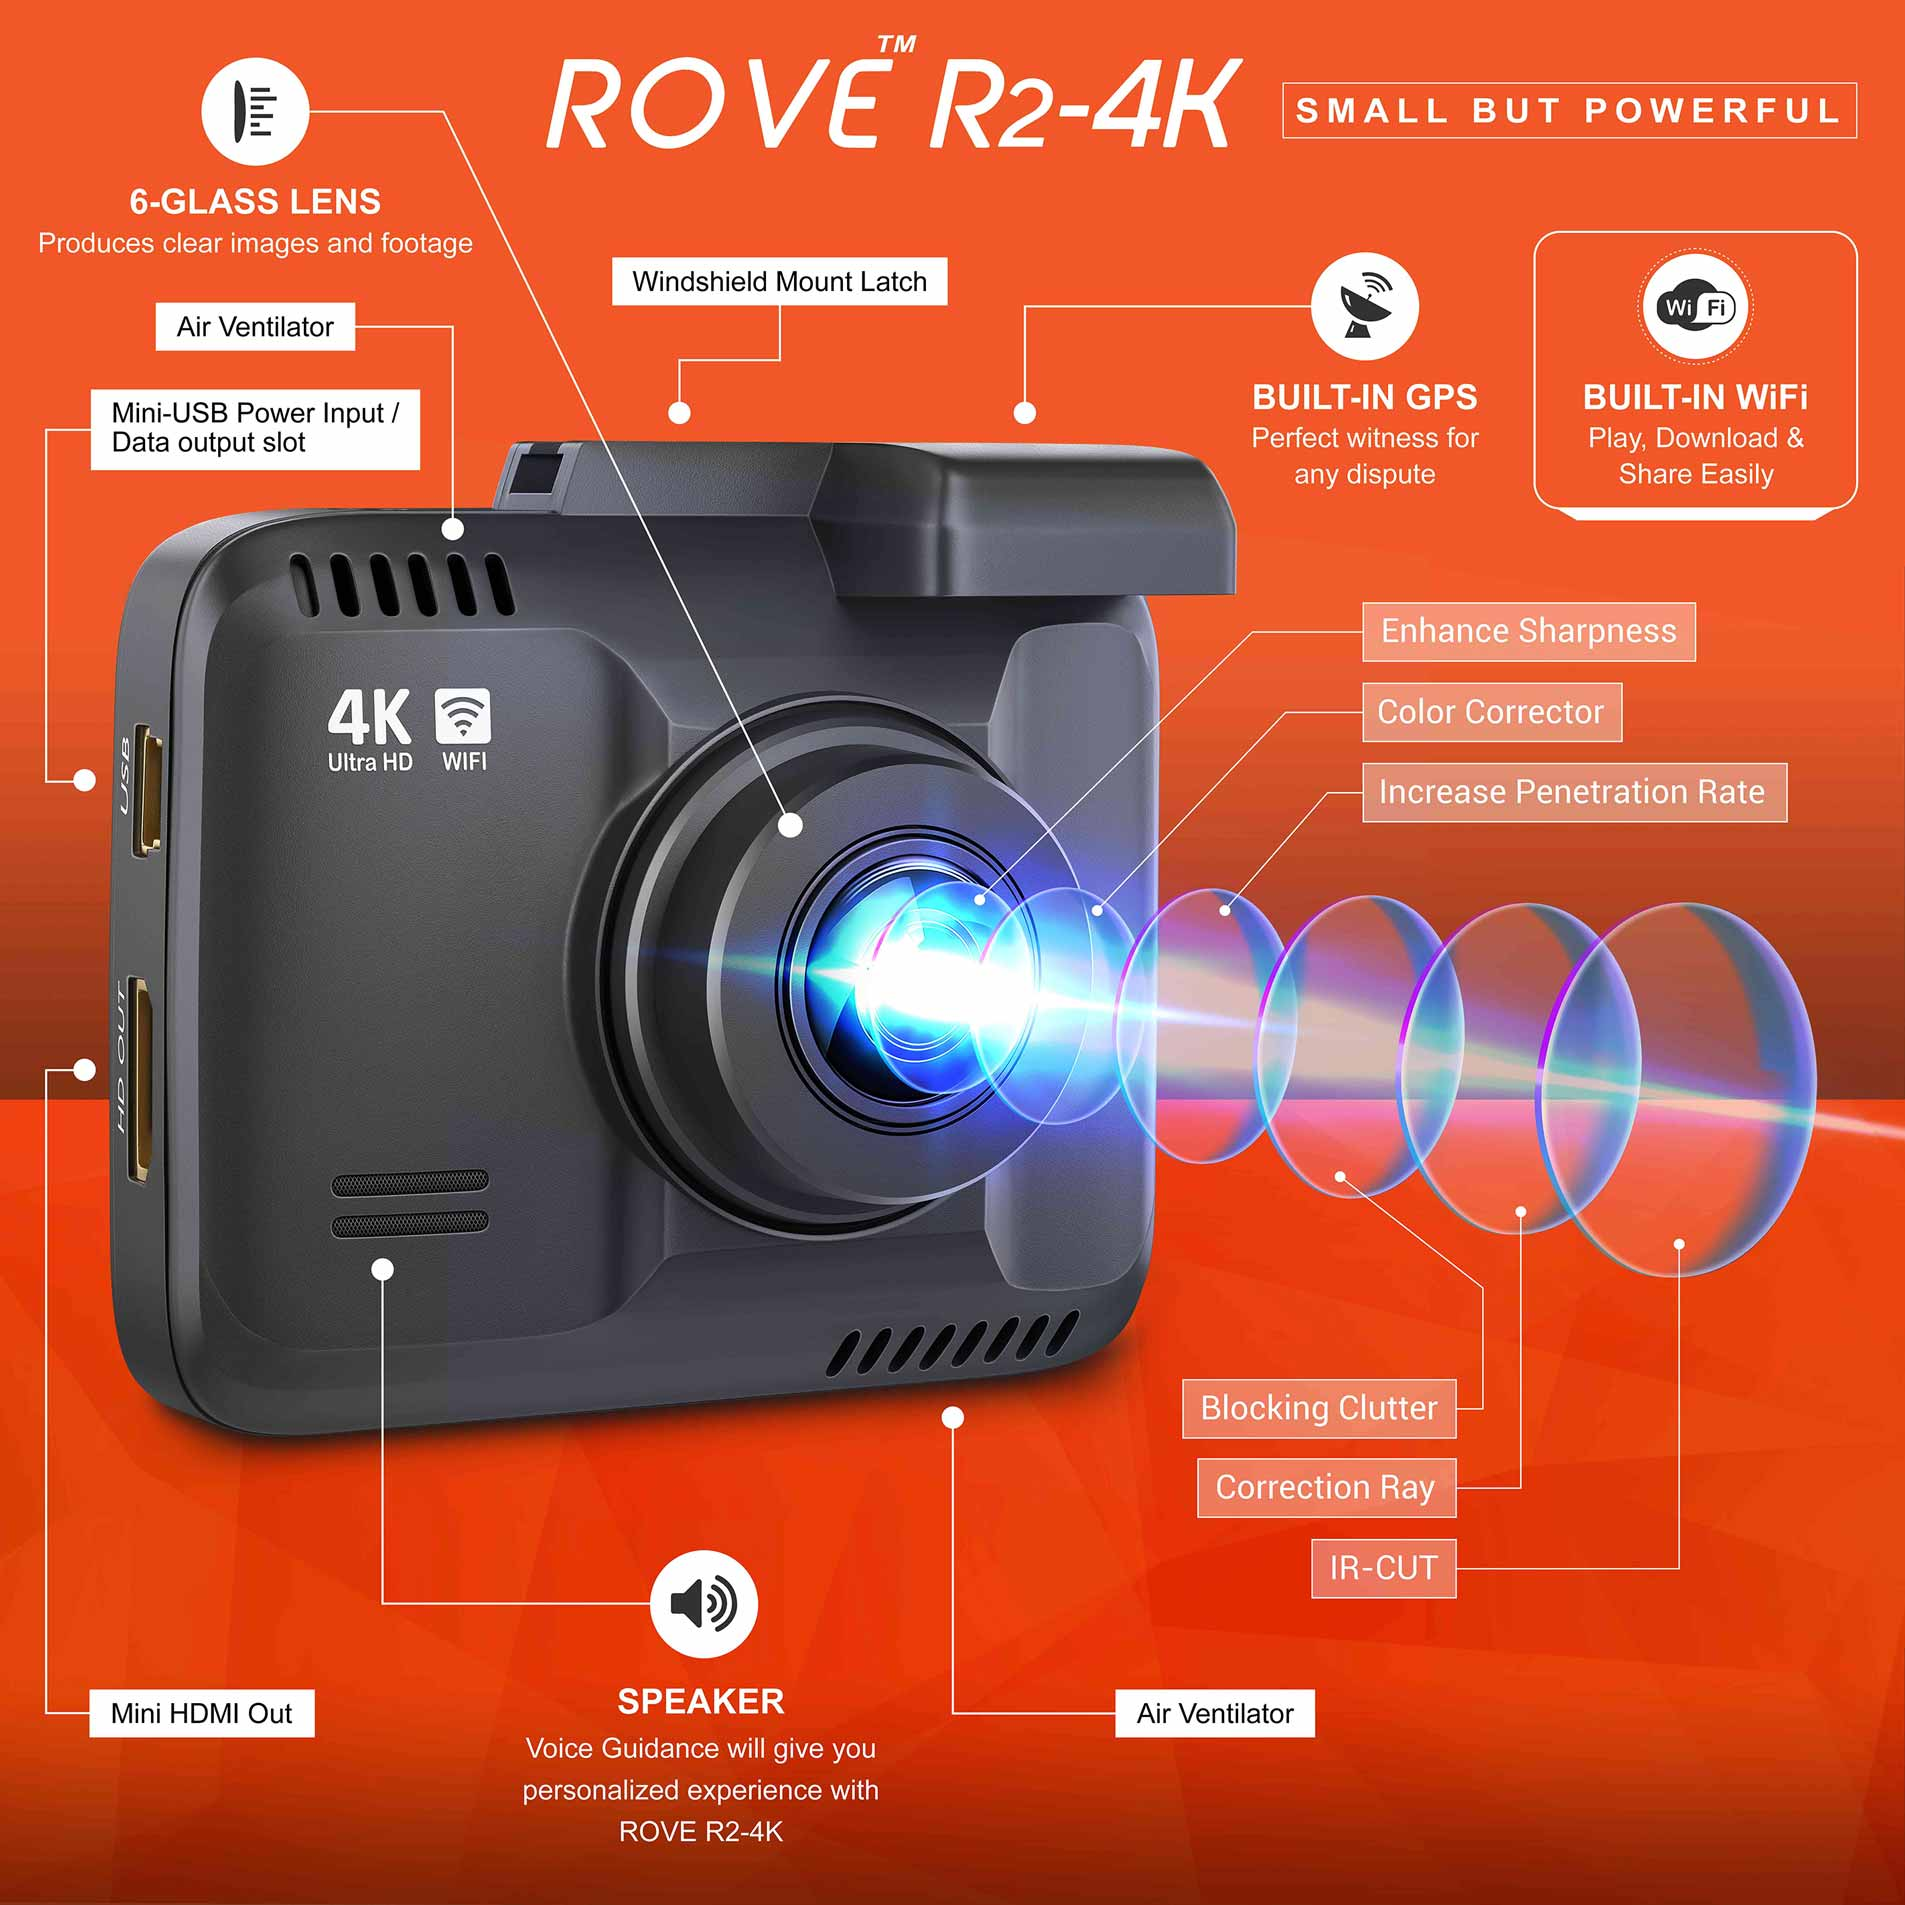 Rove r2-4K Product details